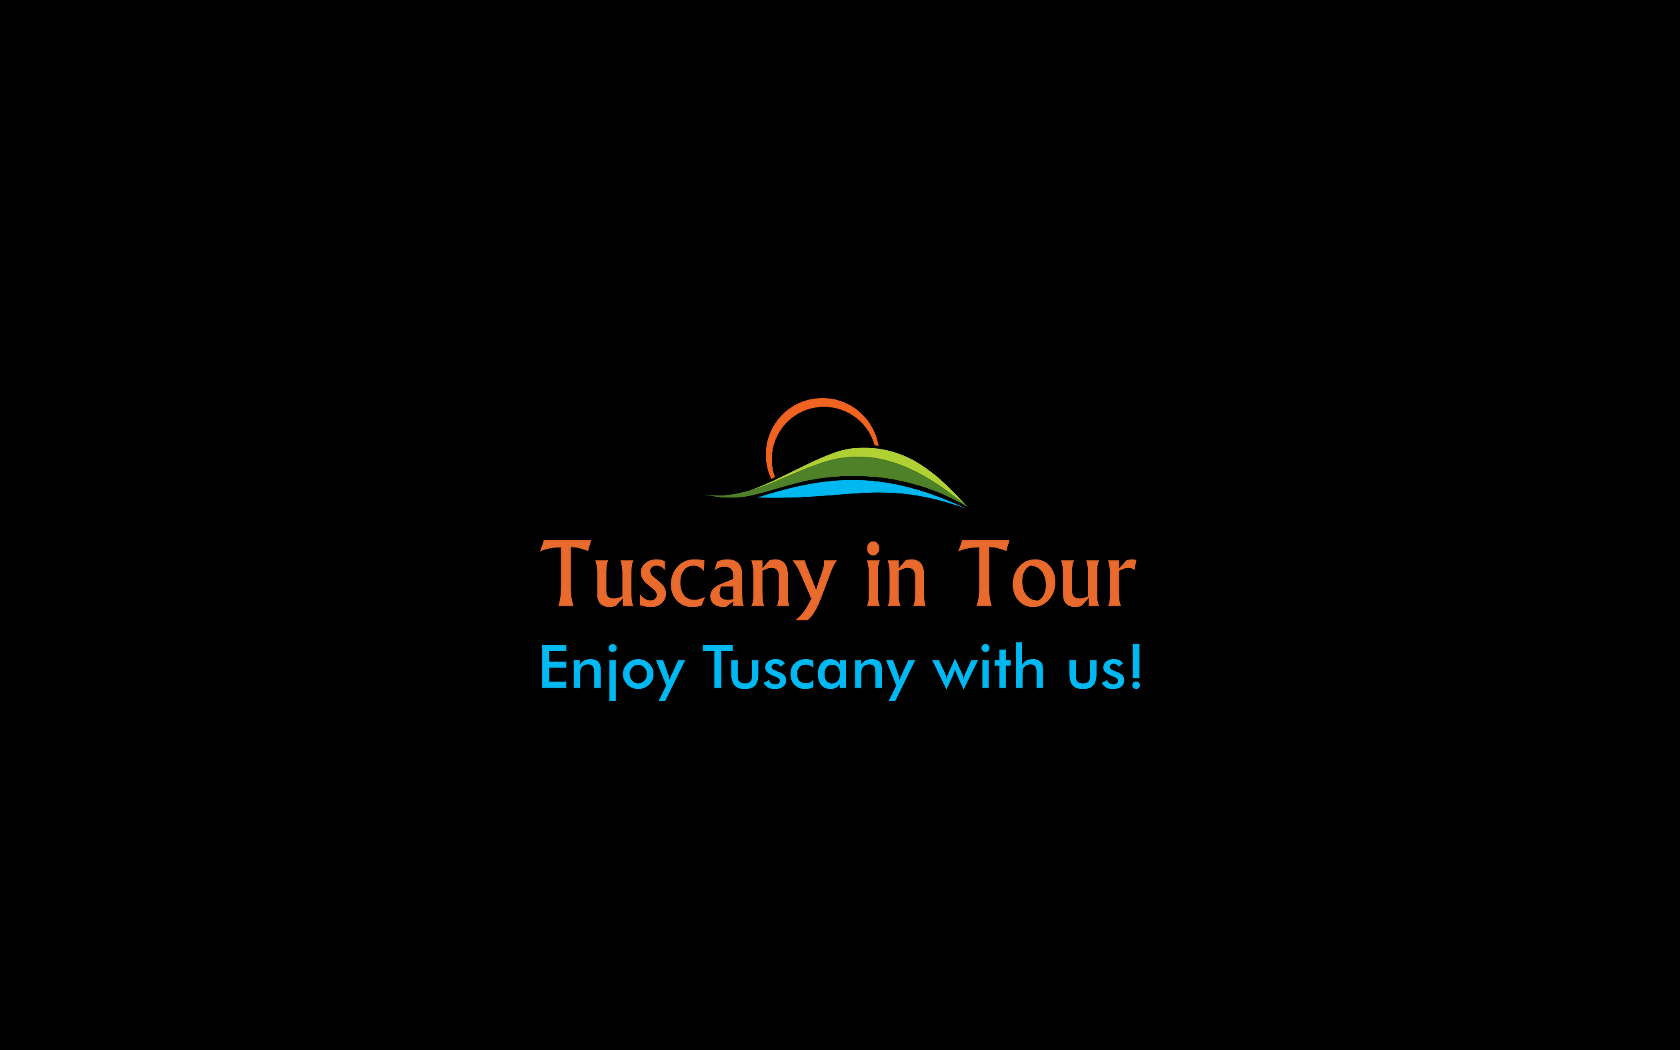 tuscany in tour logo